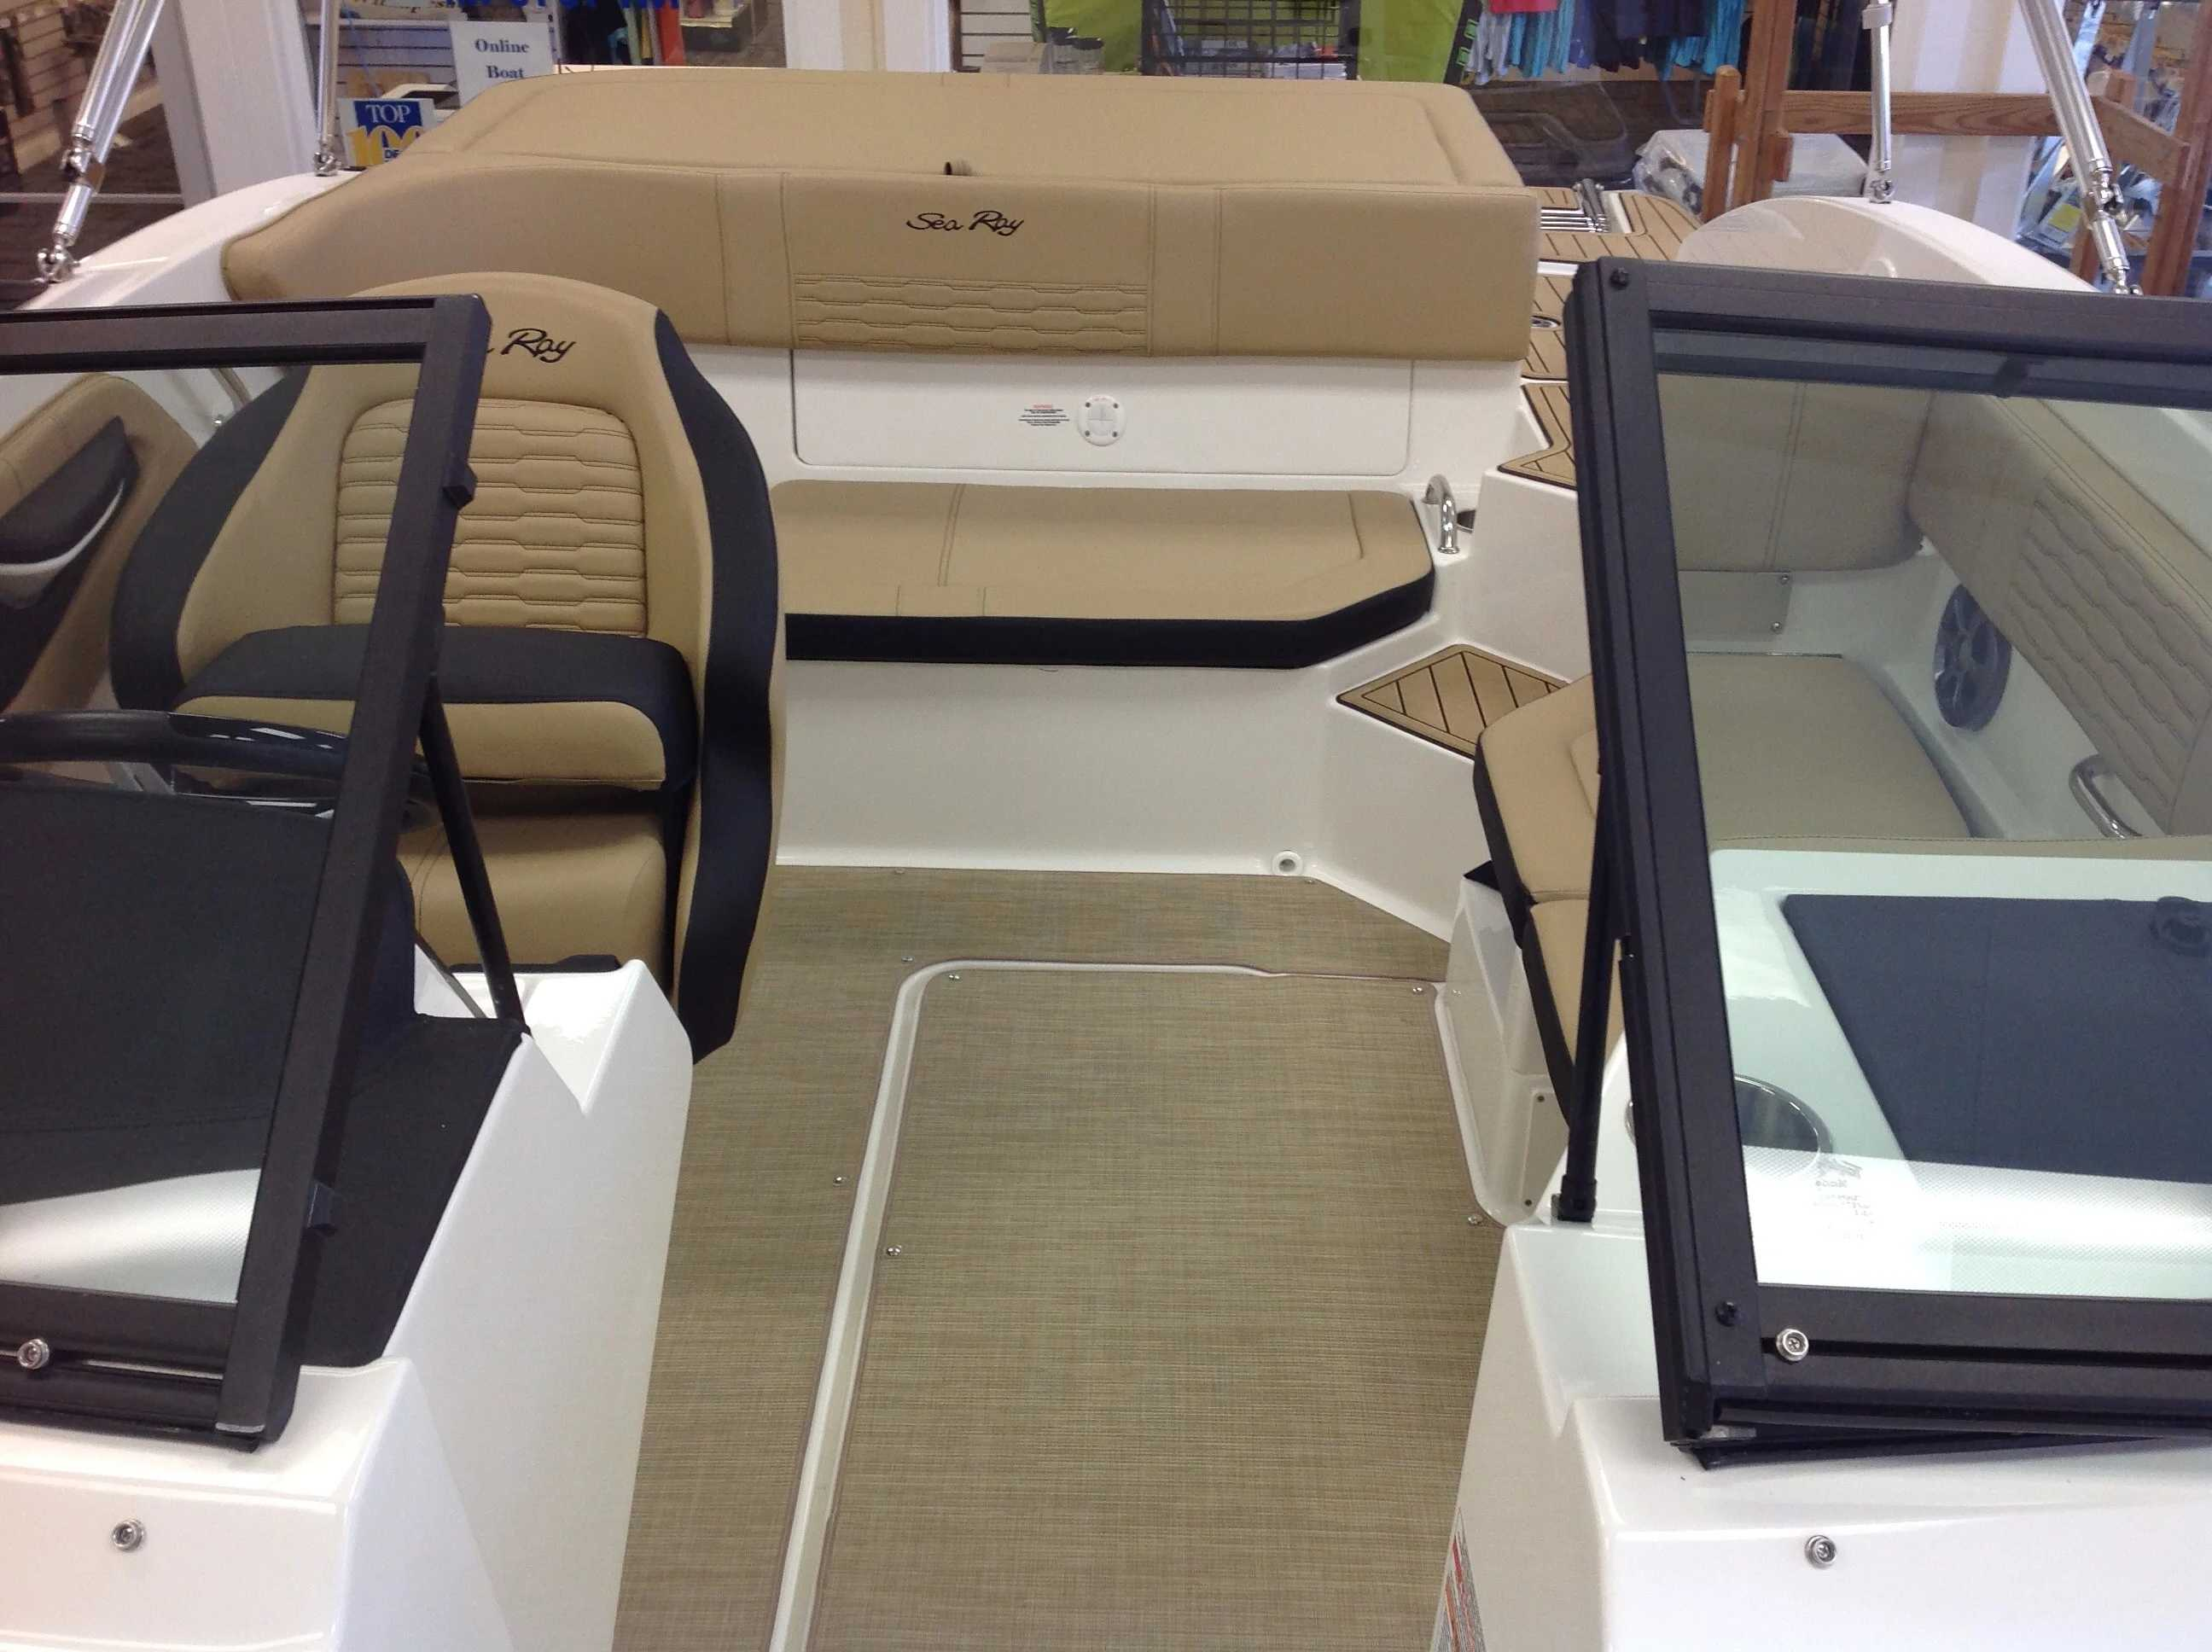 2021 Sea Ray boat for sale, model of the boat is 190 SPX & Image # 5 of 12